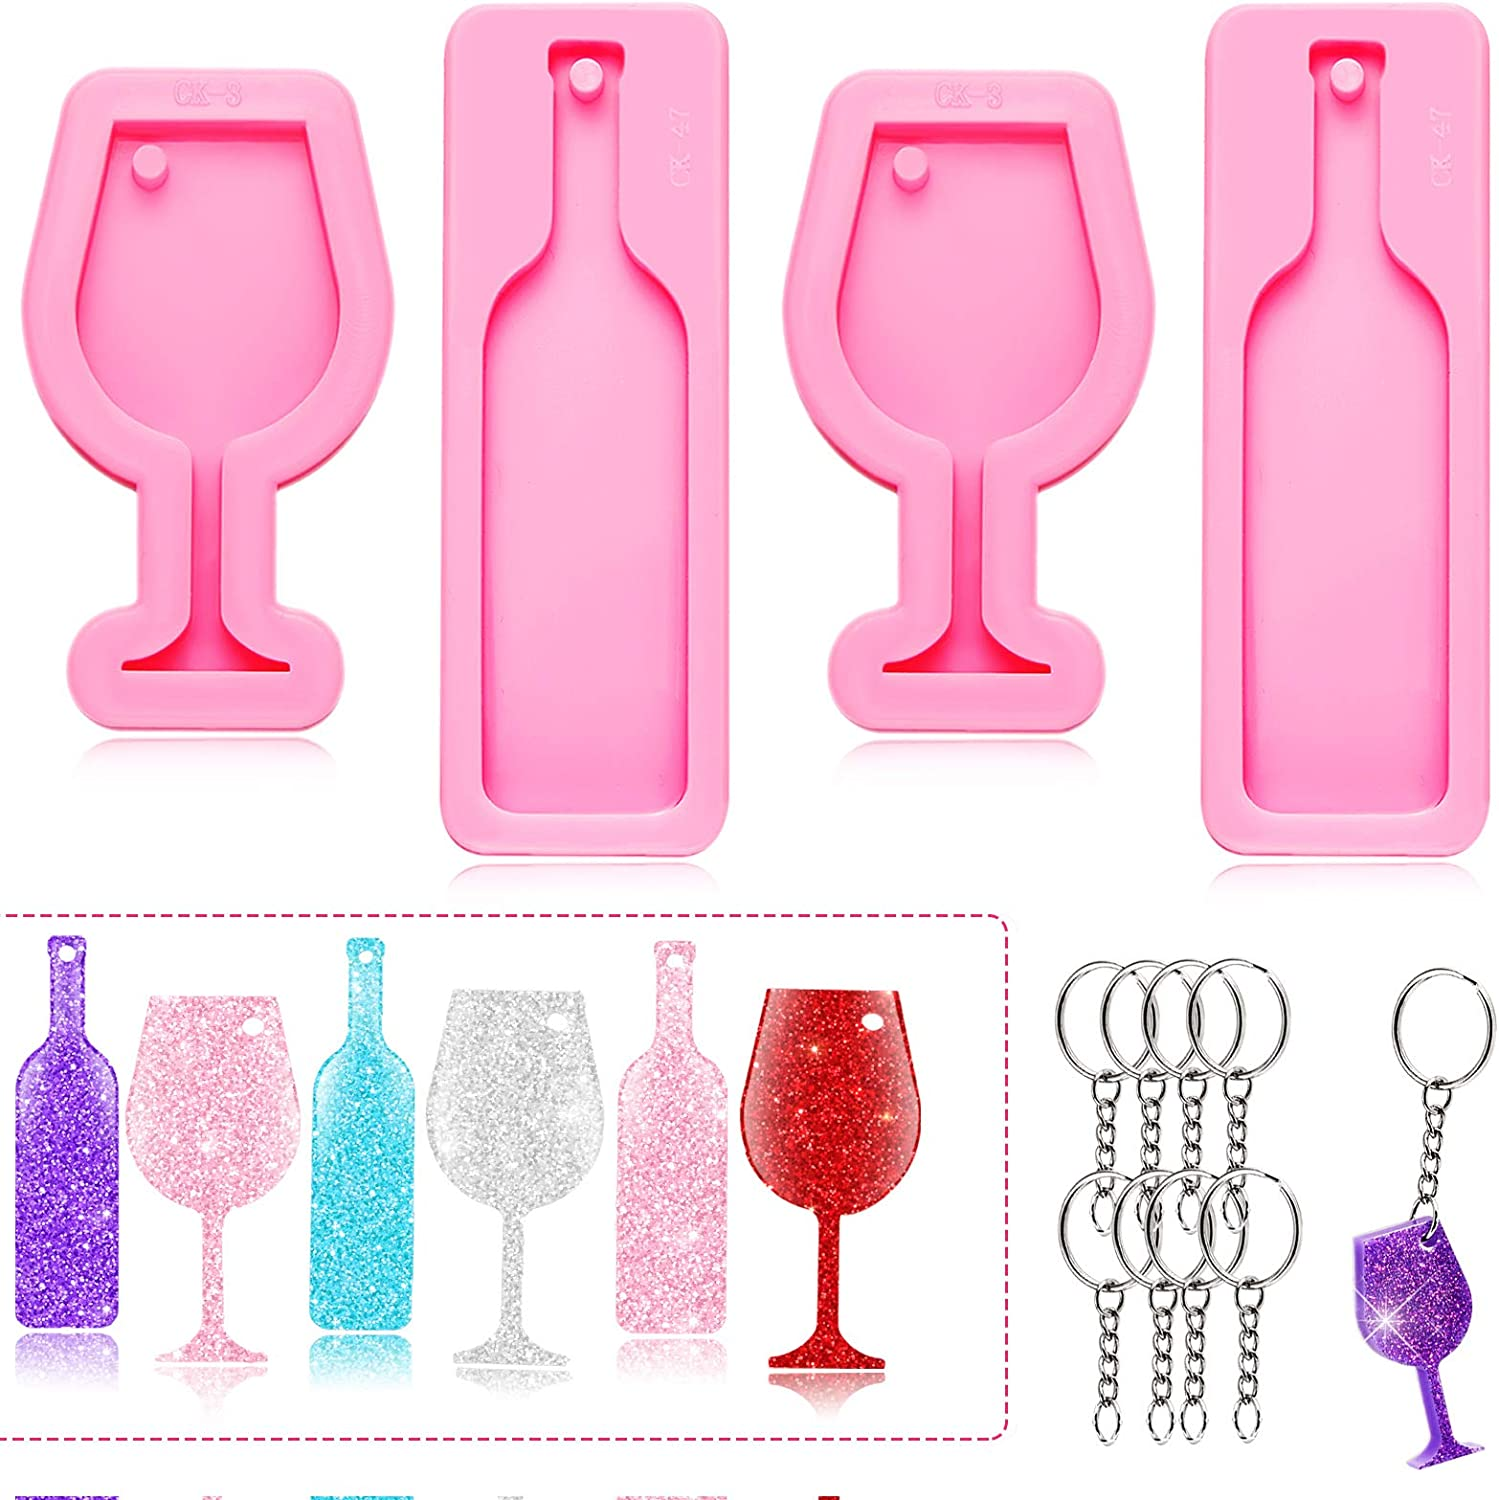 4 Pieces Mini Wine Glass Keychain Mold Goblet Tumbler Wine Bottle Shape Silicone Fondant Mold for DIY Pendant Trinket Luggage Tag Pudding Jelly Shots Desserts Candy Cake Topper Decoration